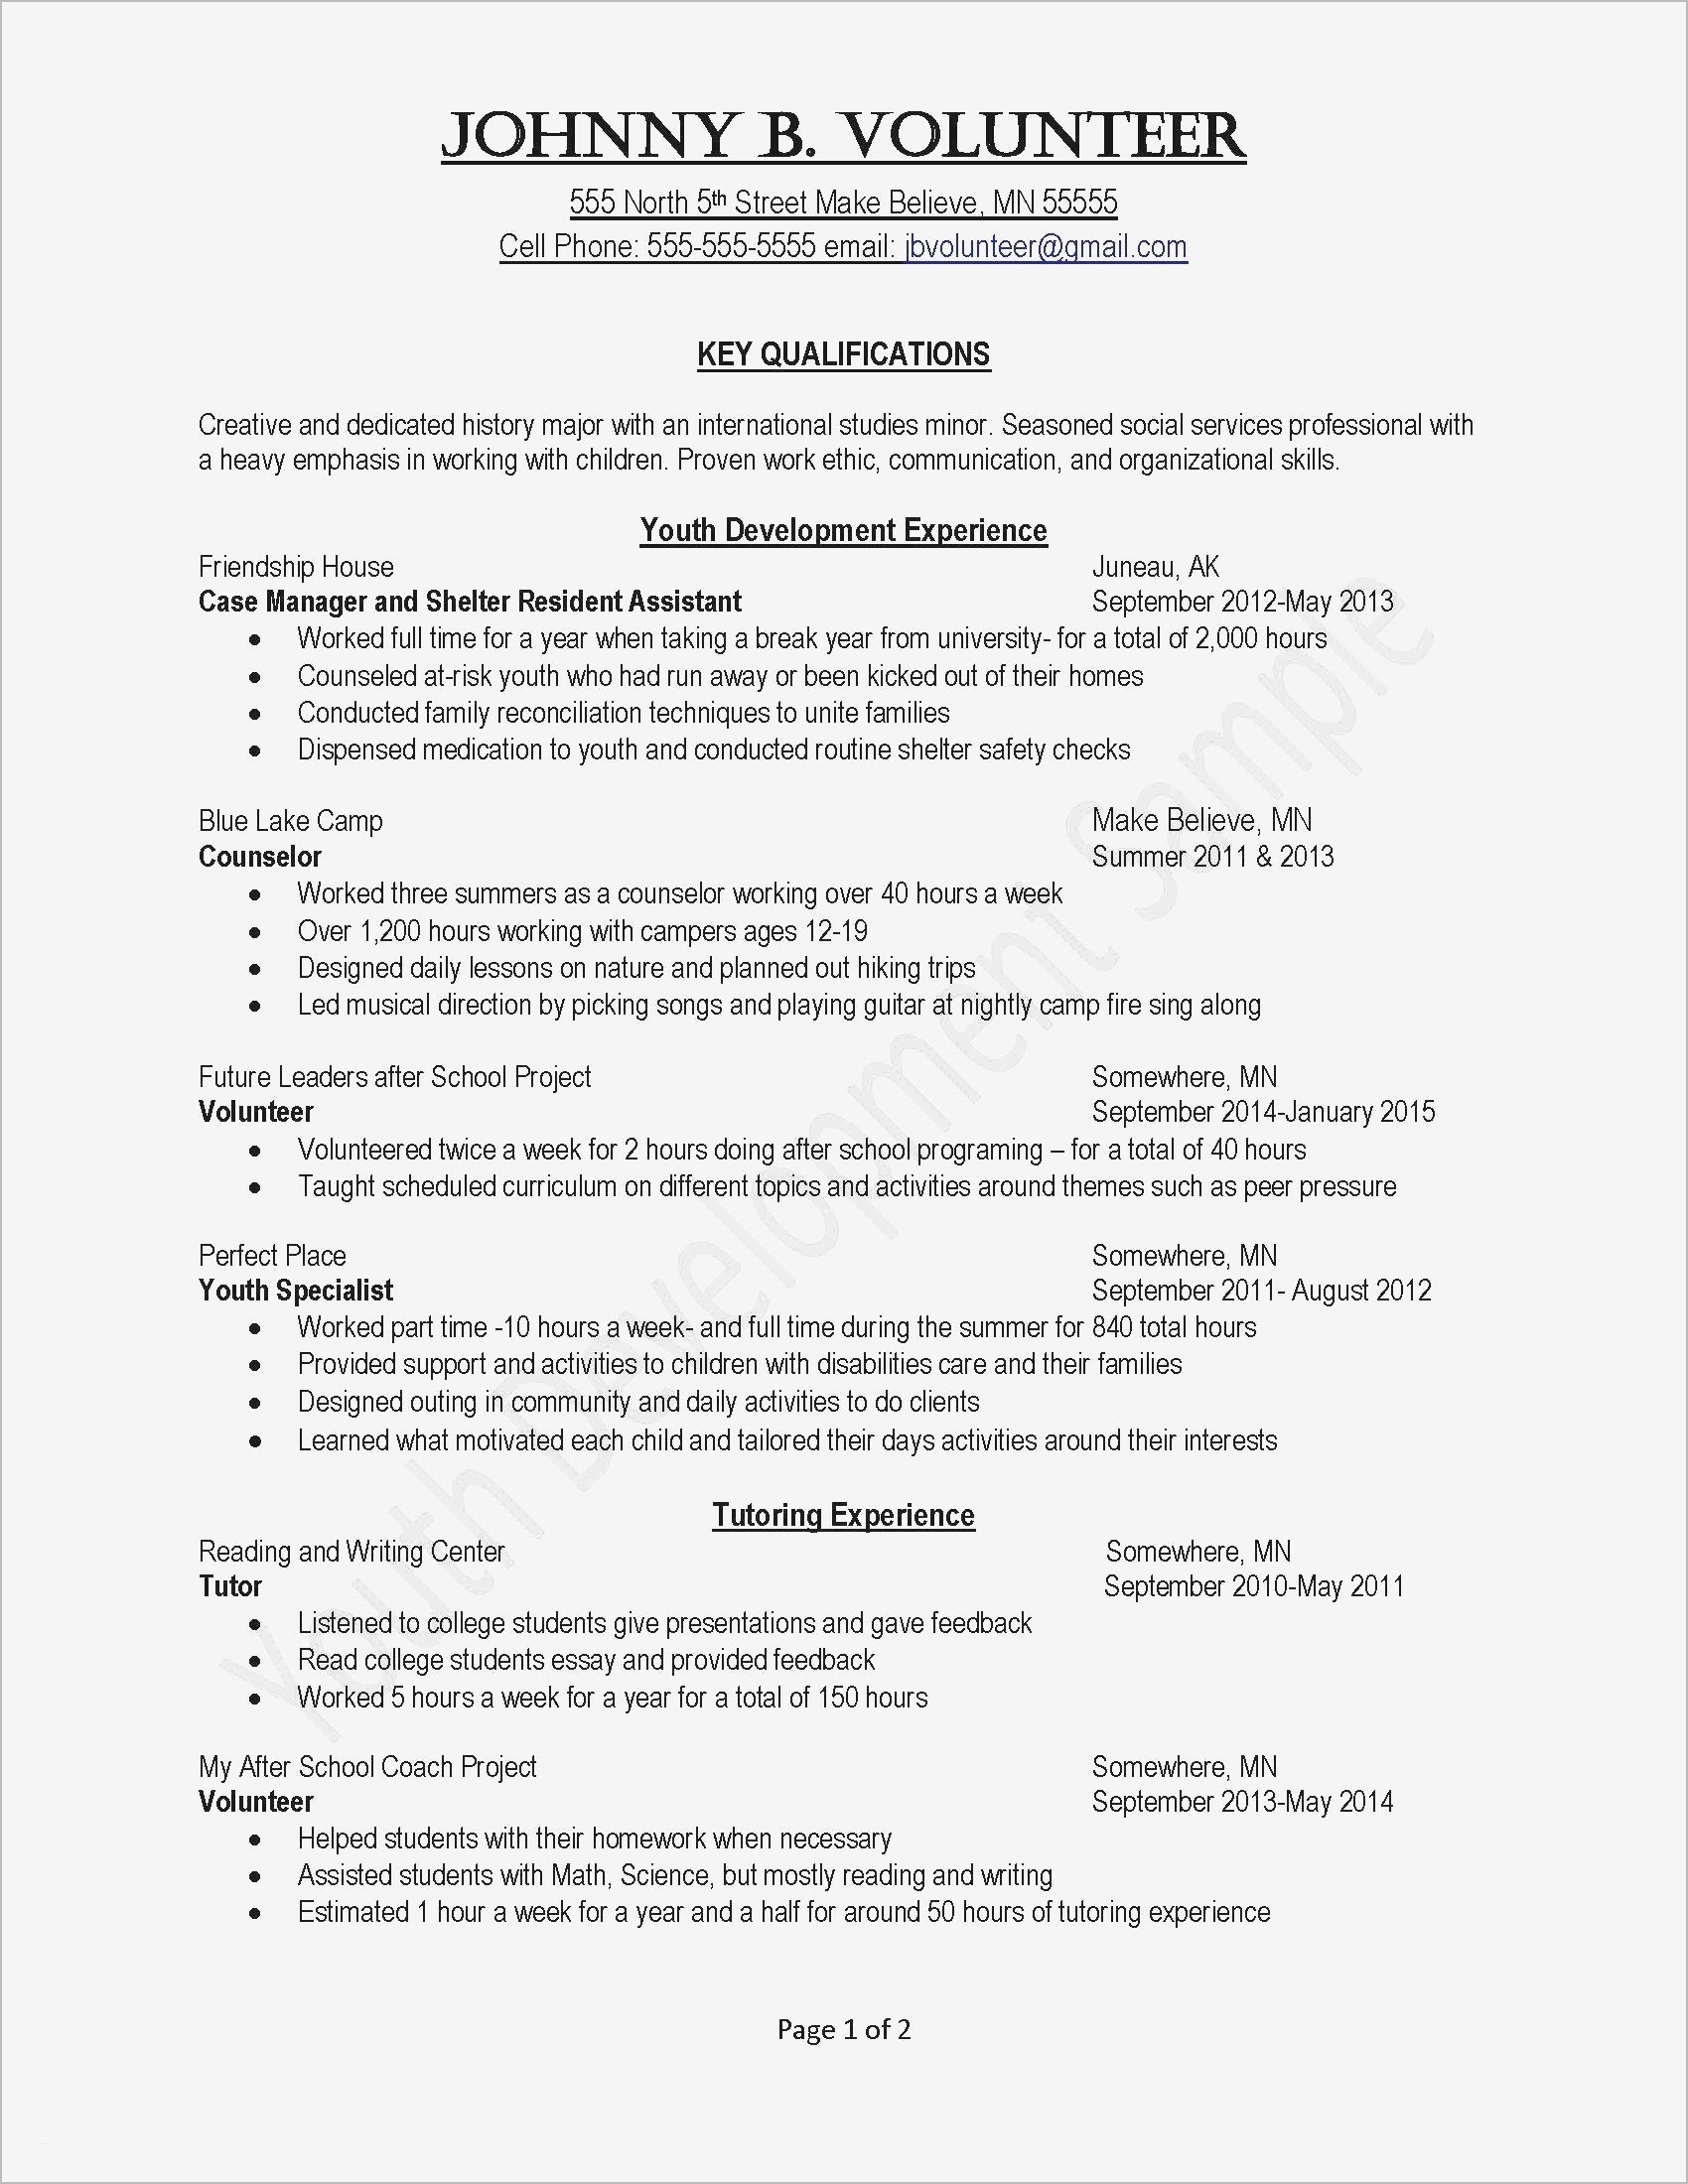 Professional Acting Resume Template - How to Make A Professional Cover Letter New Cfo Resume Template